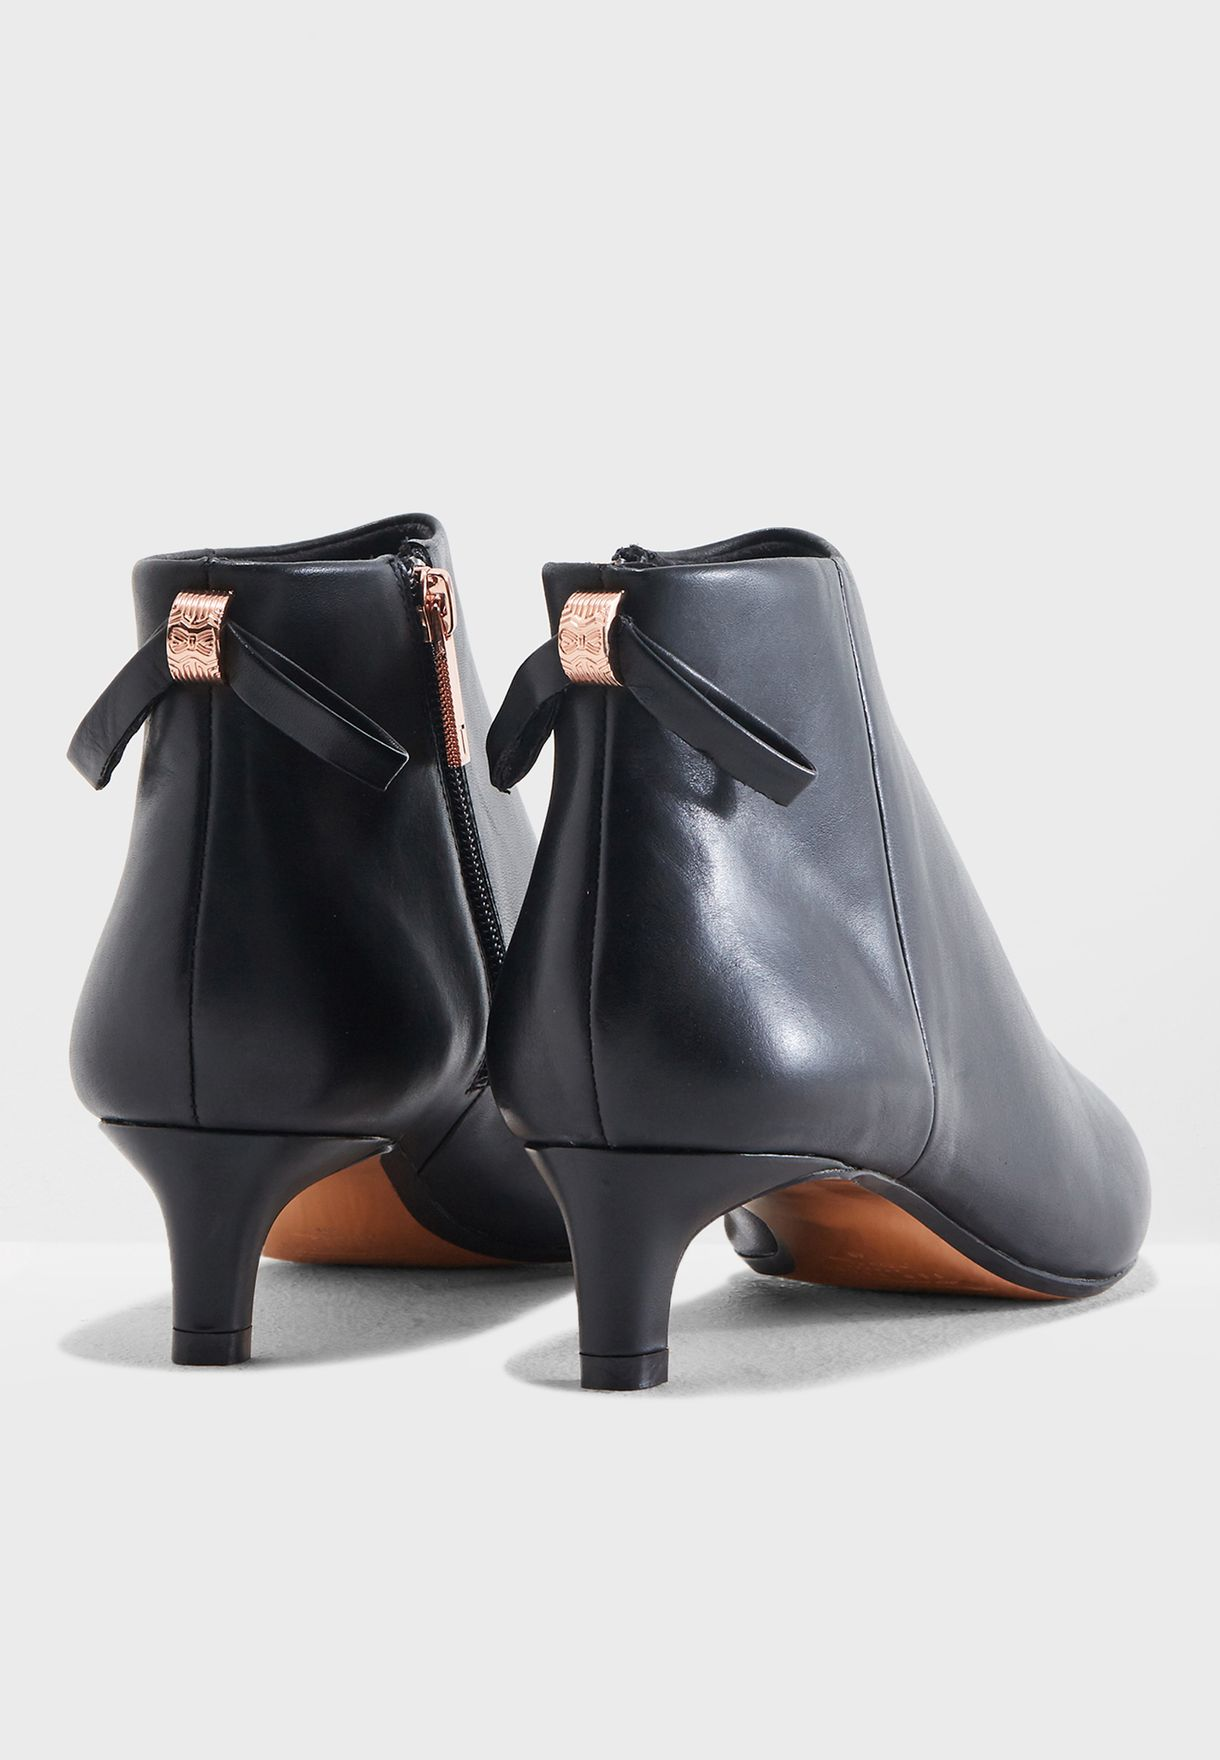 aeecf7a6d Shop Ted baker black Amaedi Ankle Boot 917778 for Women in UAE ...